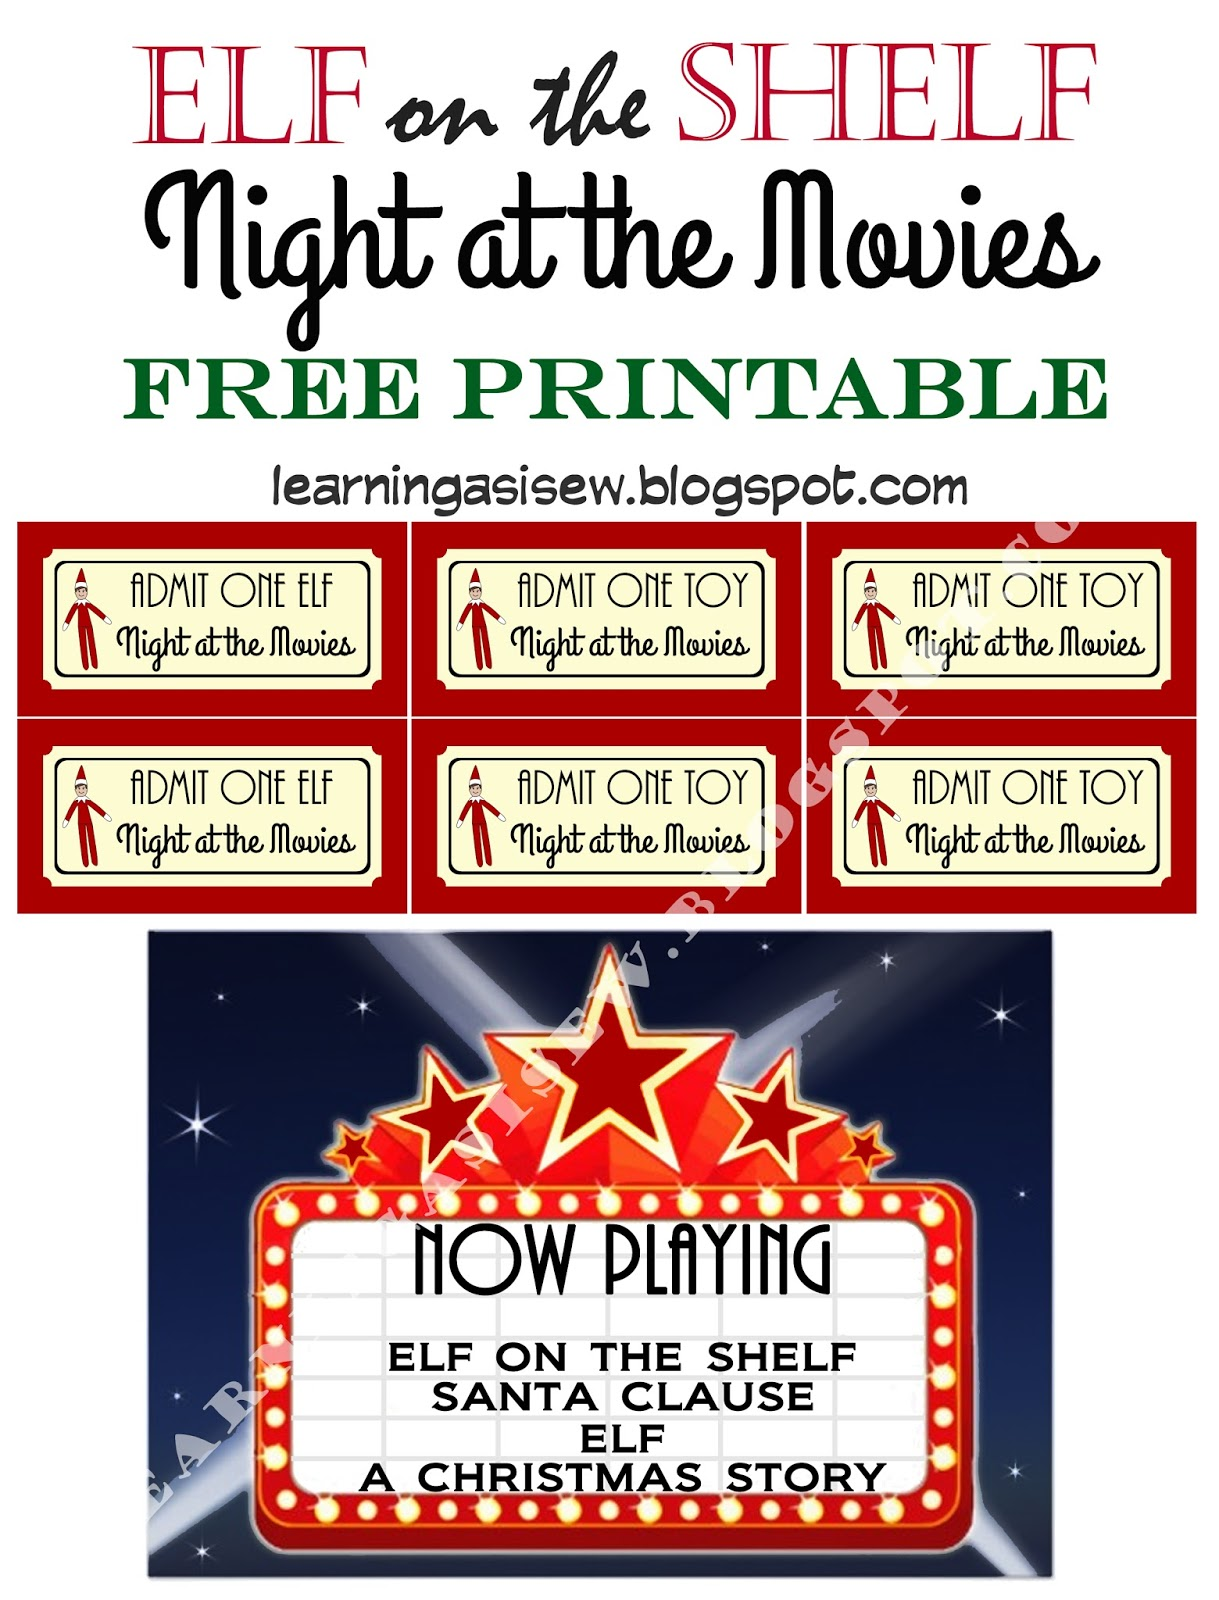 This is a picture of Sweet Printable Movie Tickets